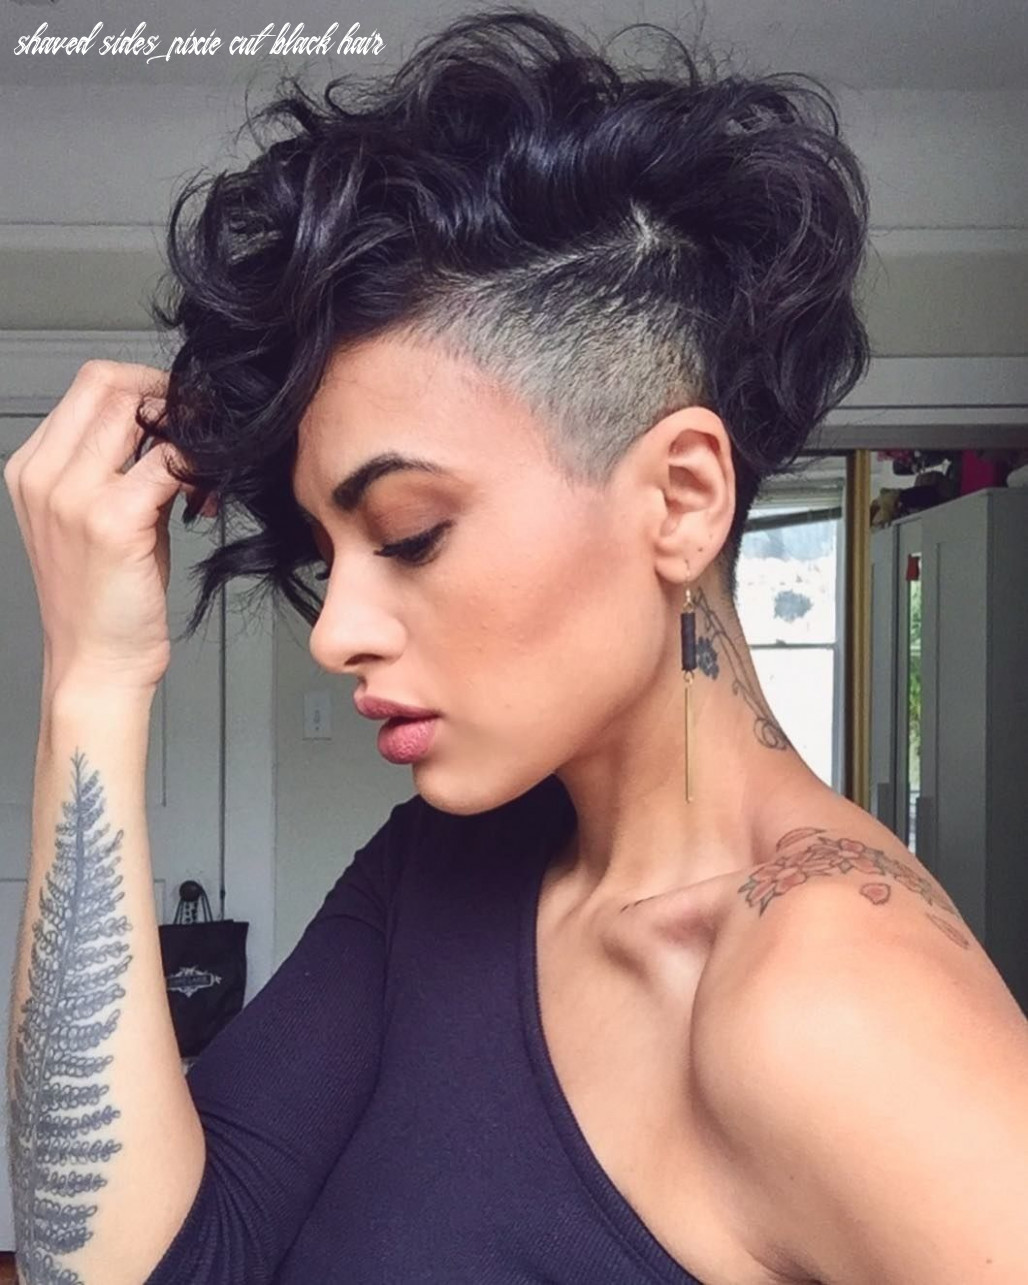 Pin on short hairstyle shaved sides pixie cut black hair